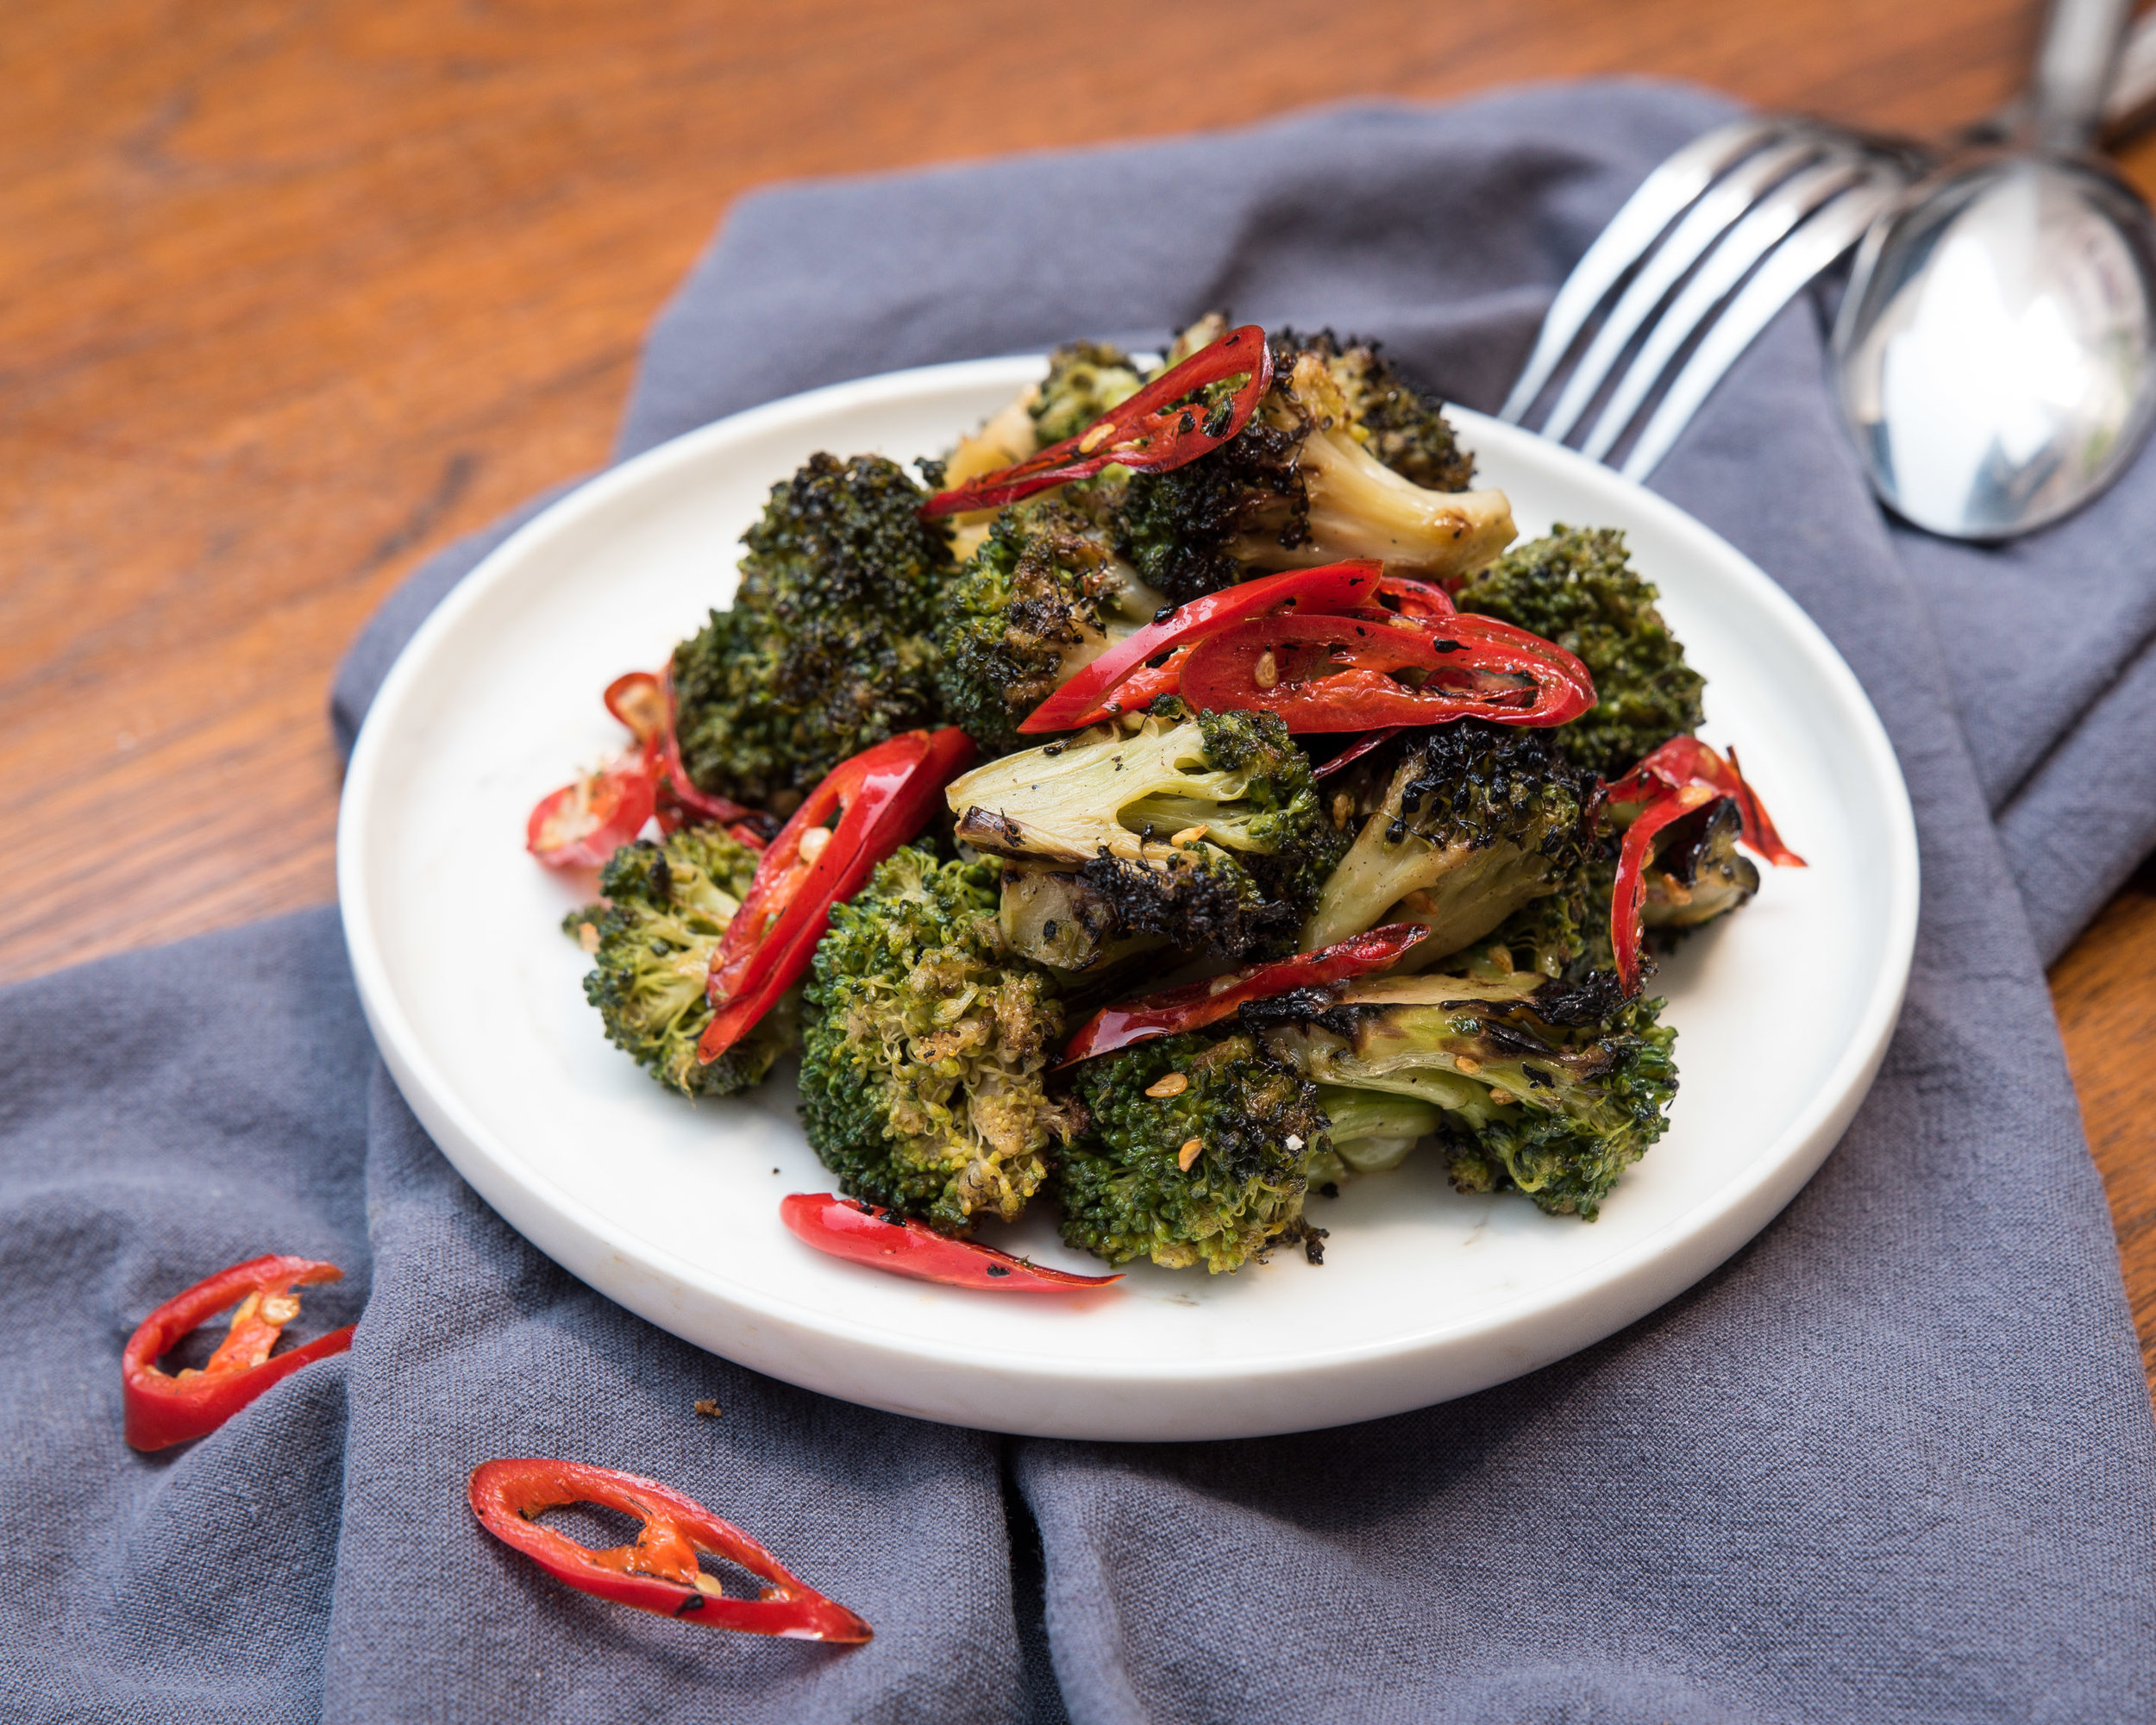 Coriander Leaf Grill_Charred Broccoli_2880x2304.jpg